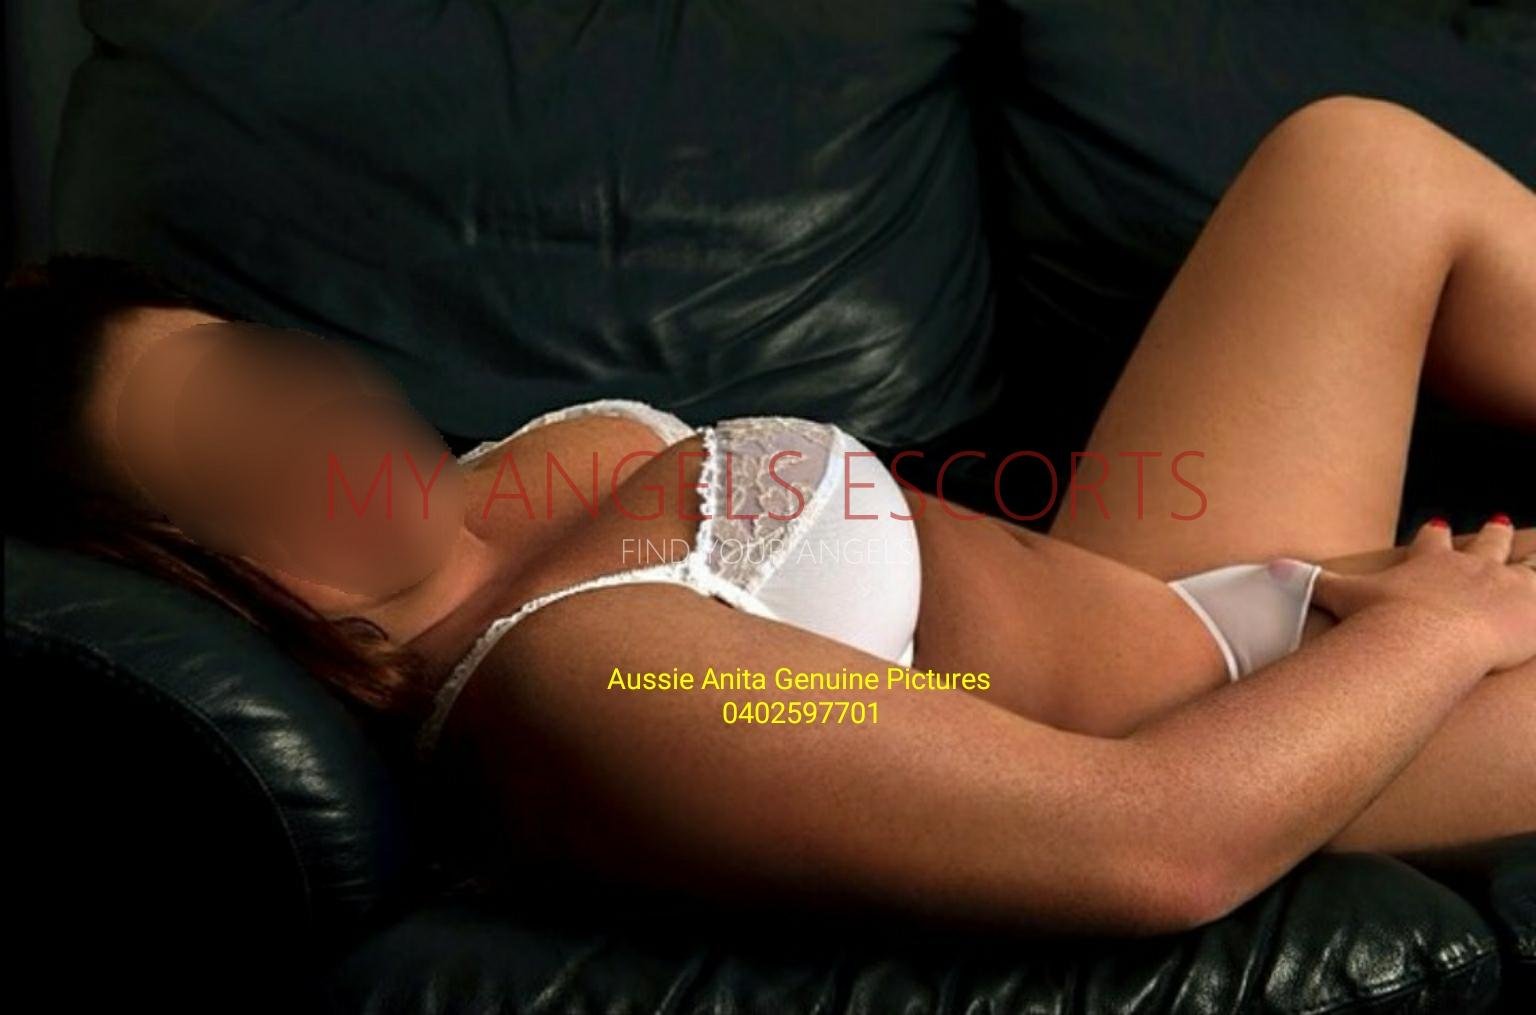 Australia Escorts-Aussie Anita -sensual-massage-Private-Brisbane-escorts-camira-Escorts-4